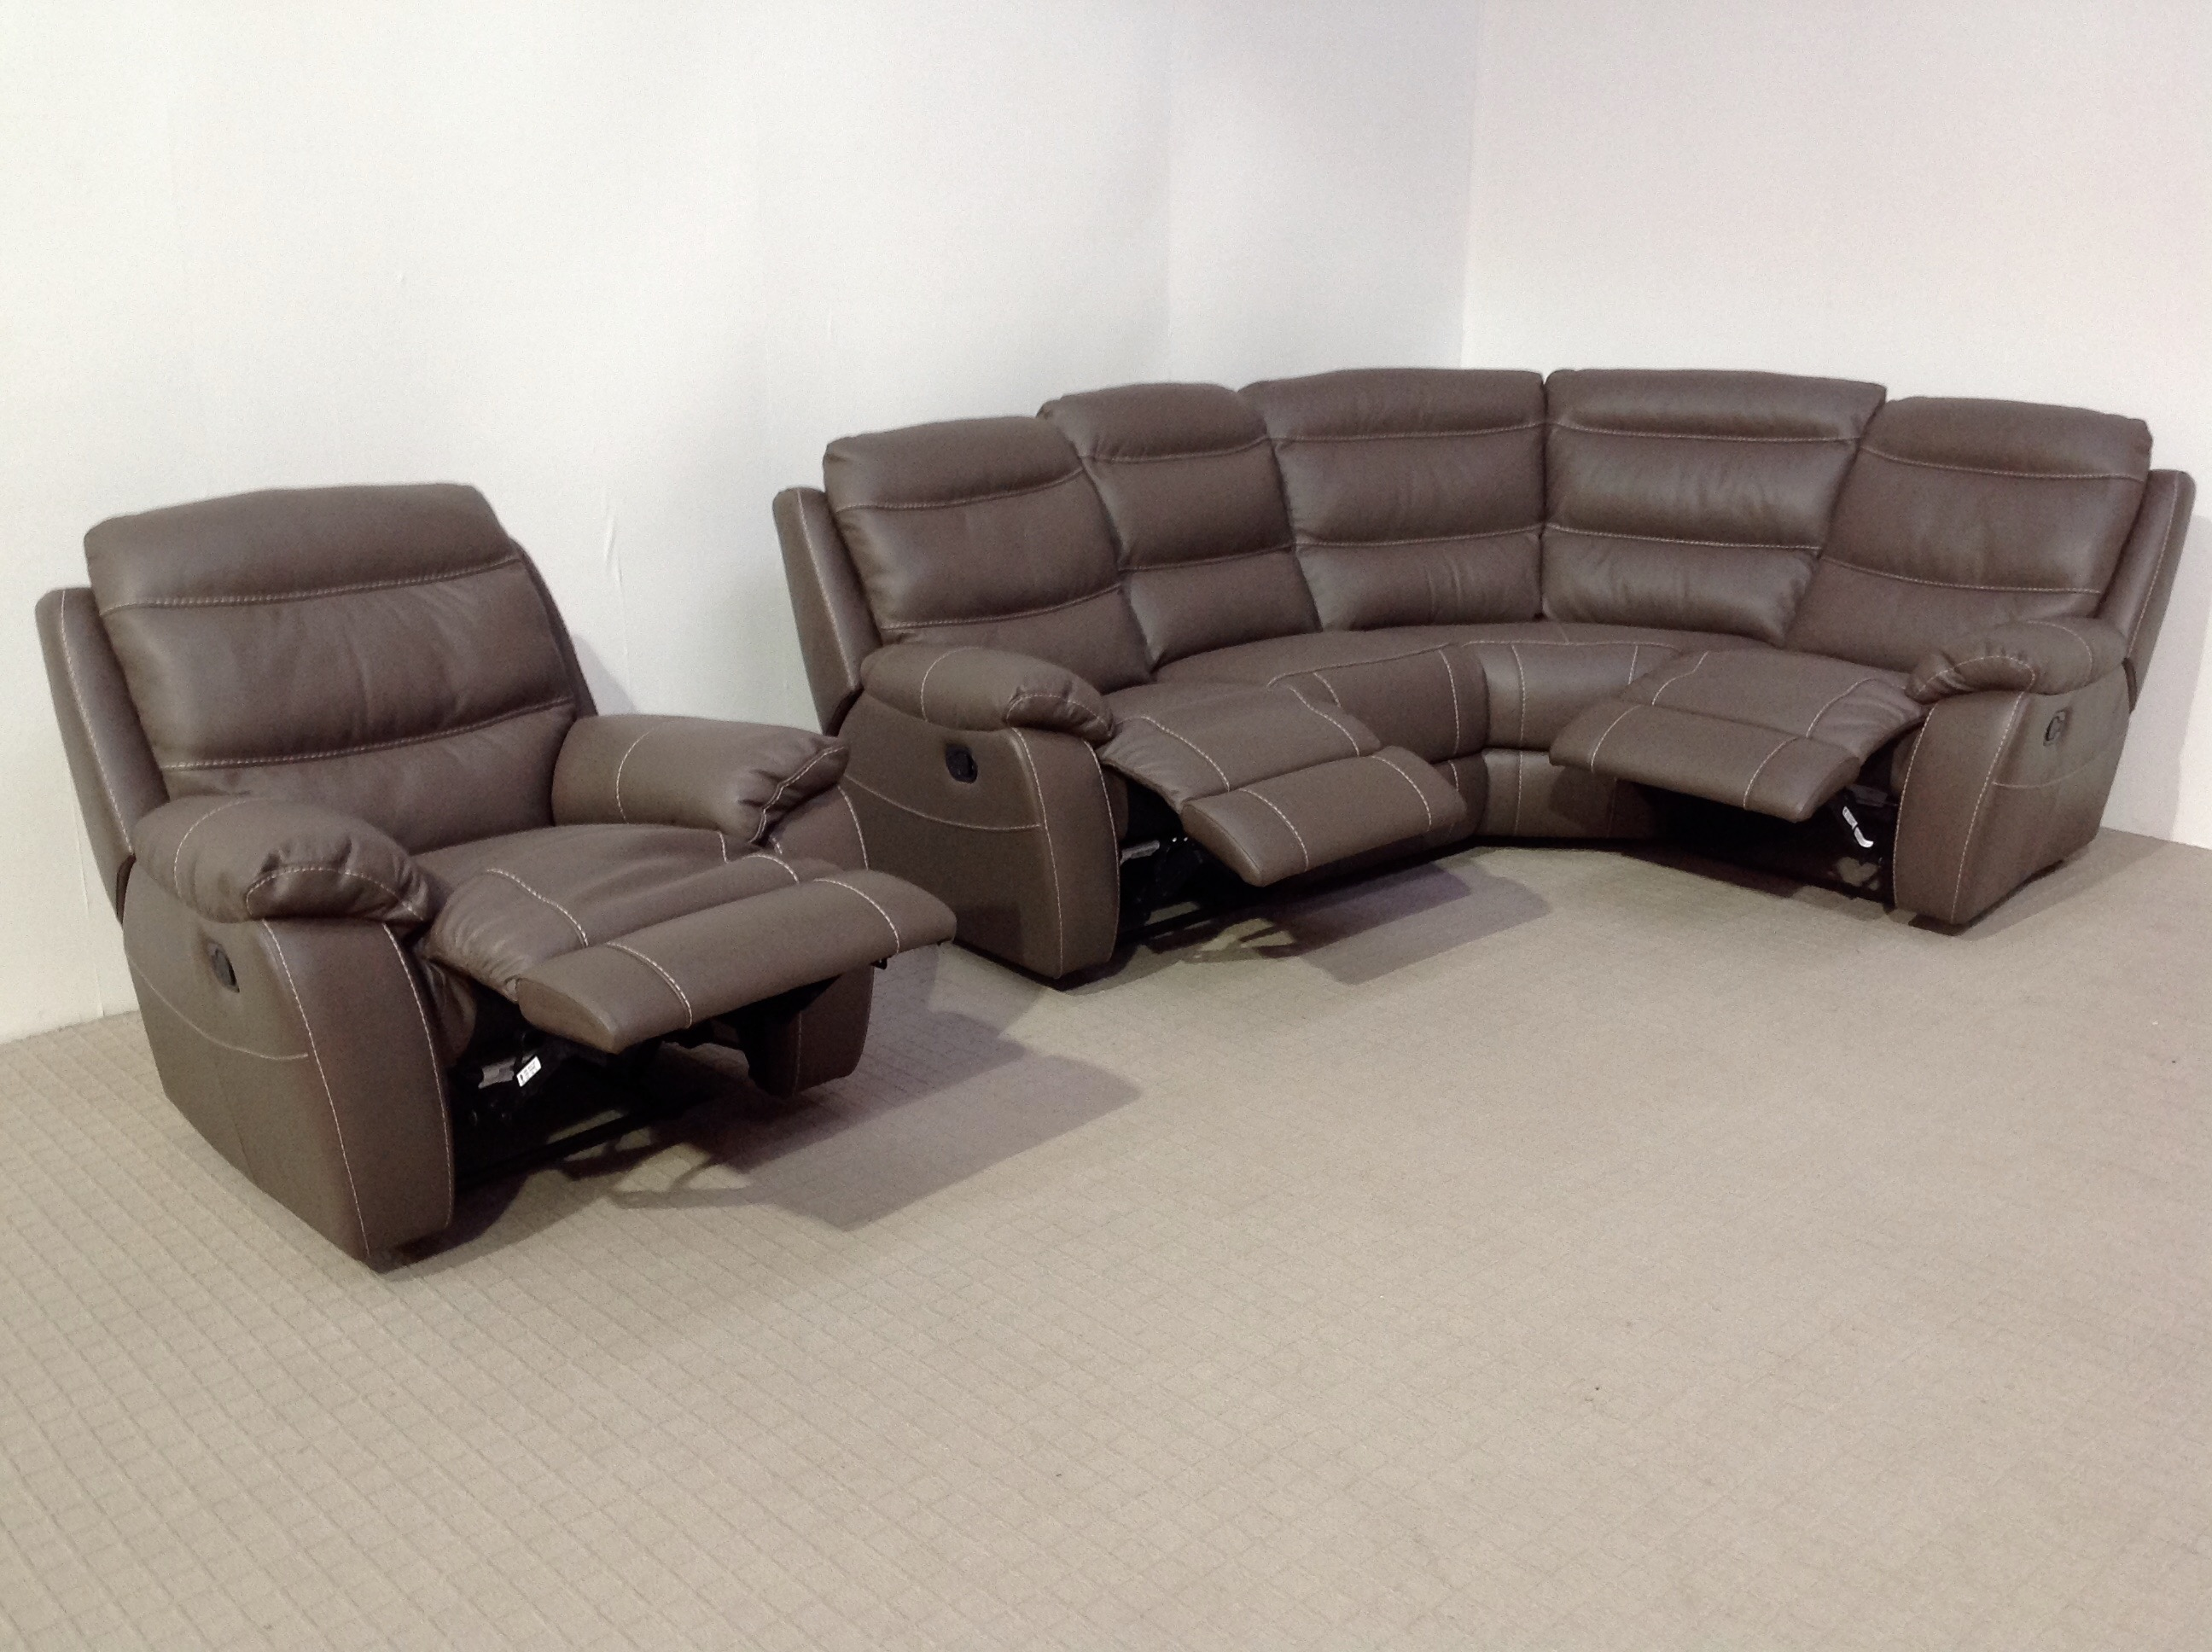 Softaly Leather Reclining Corner Sofa Reclining Matching Chair Furnimax Brands Outlet